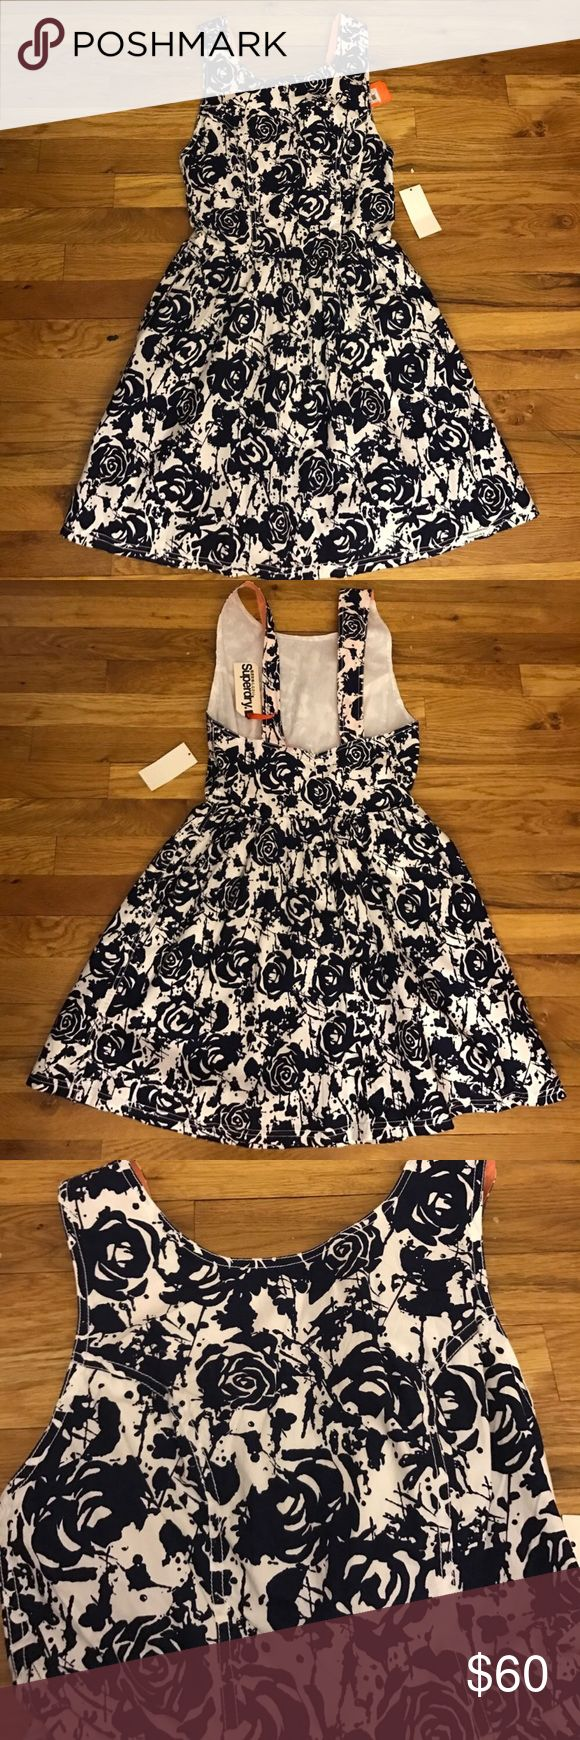 Super dry nwt navy floral dress Size xs! NWT! Pet free and smoke free home. Zips up back Superdry Dresses